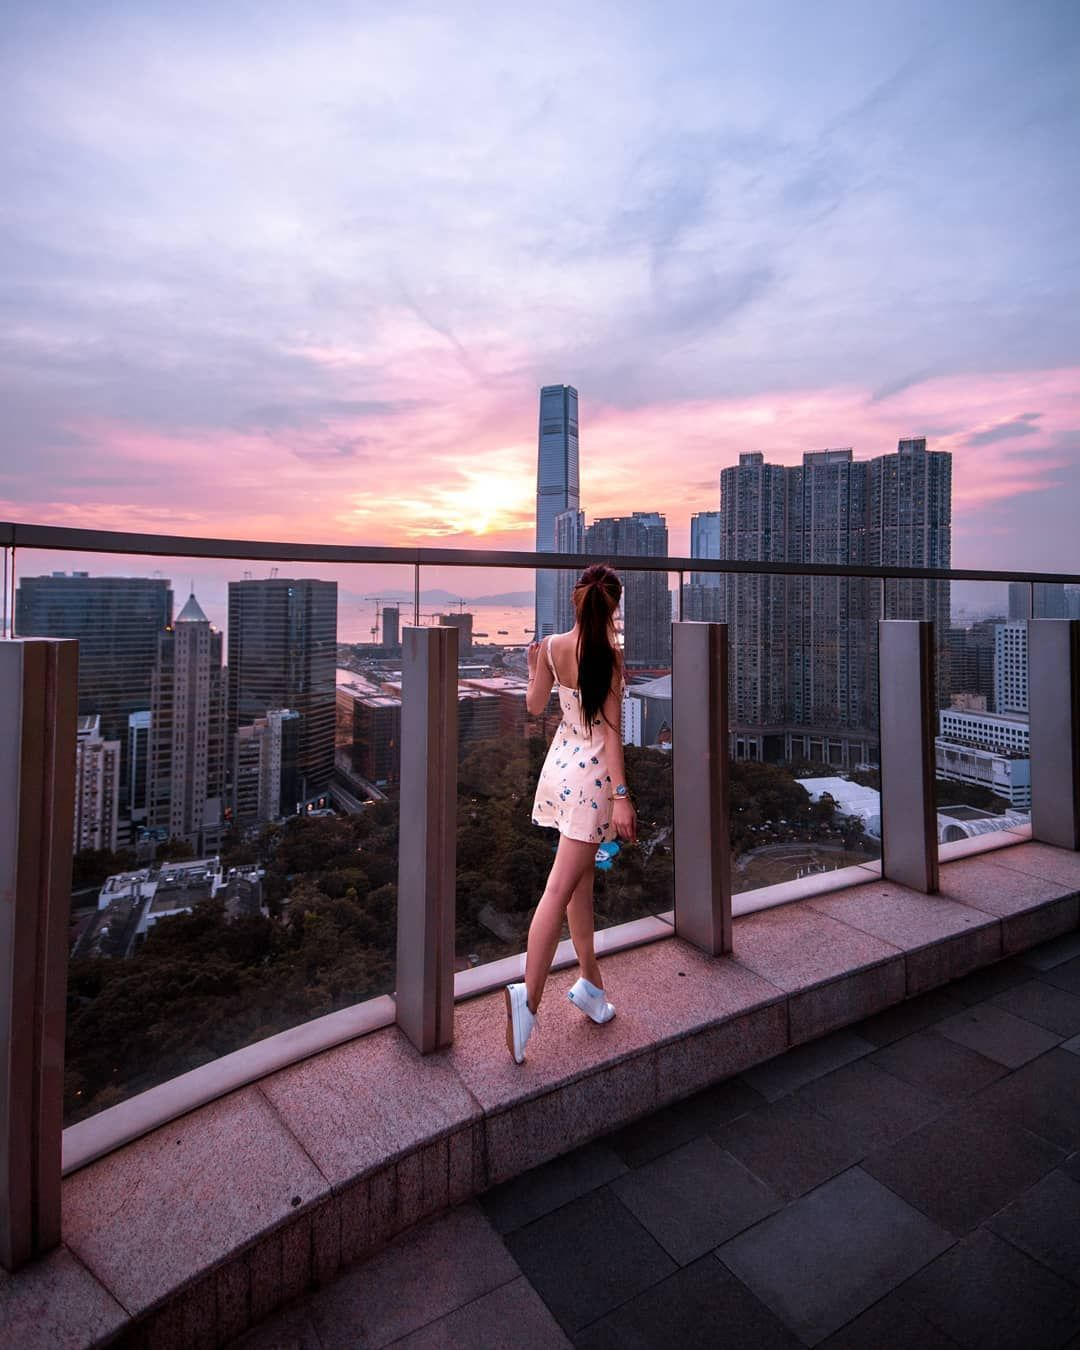 9 Unique And Beautiful Places To Watch The Sunset In Hong Kong